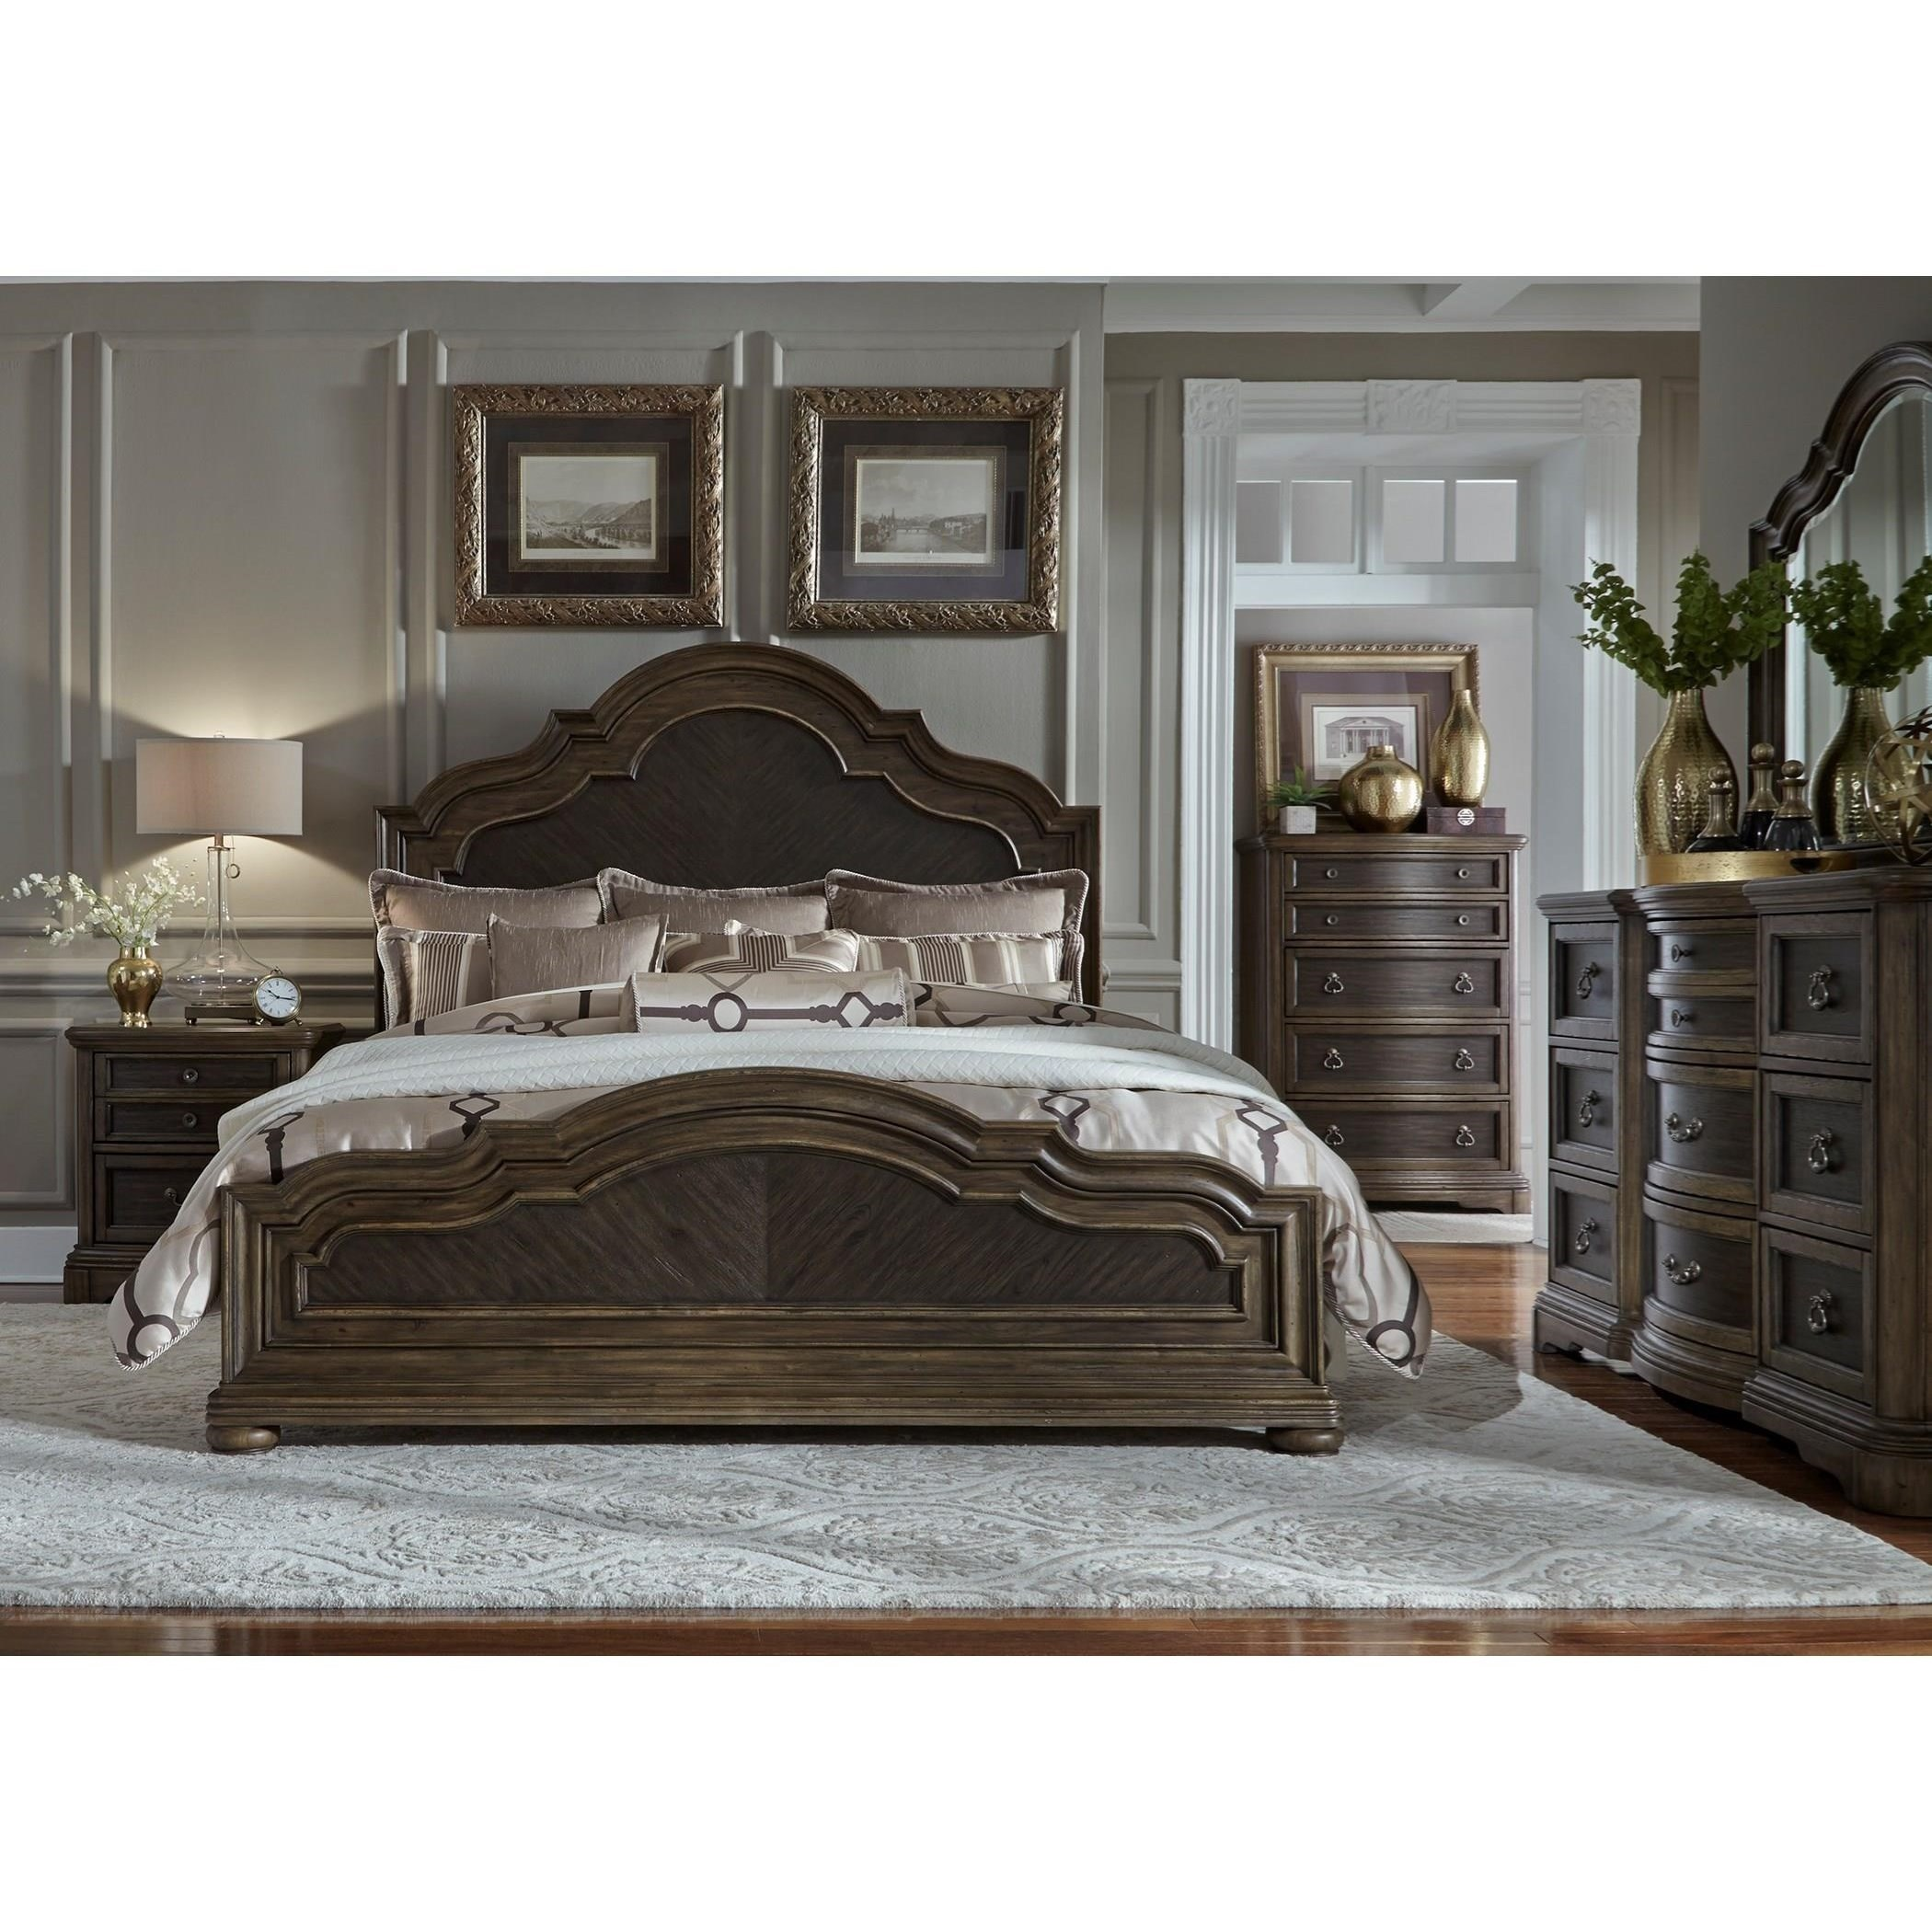 Liberty Furniture Valley Springs King Bedroom Group - Item Number: 822-BR-KPBDMC